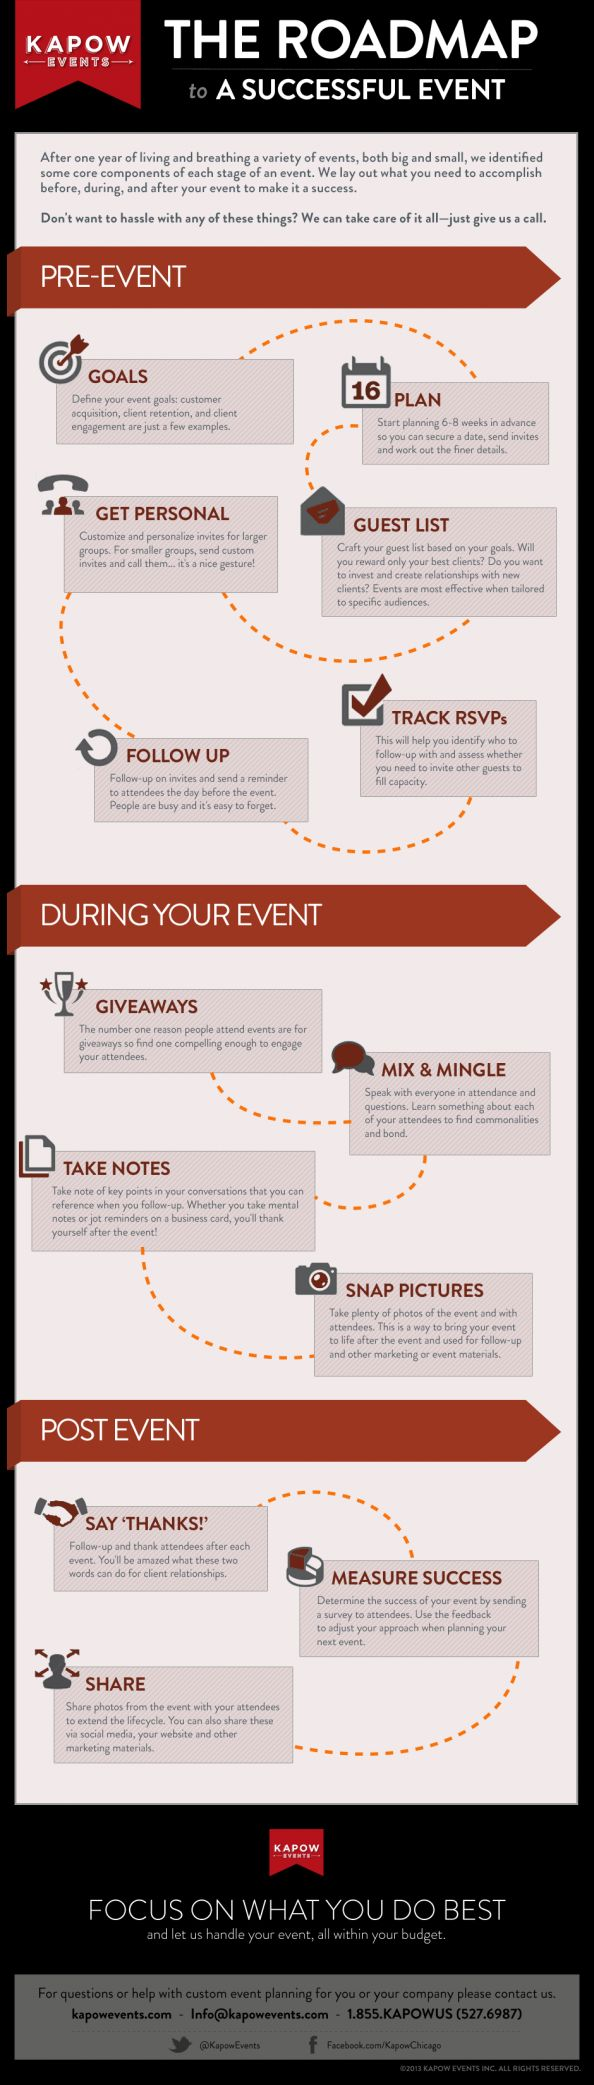 As the event organiser we follow these steps, as an exhibitor you can too by inviting prospective clients or even current clients!